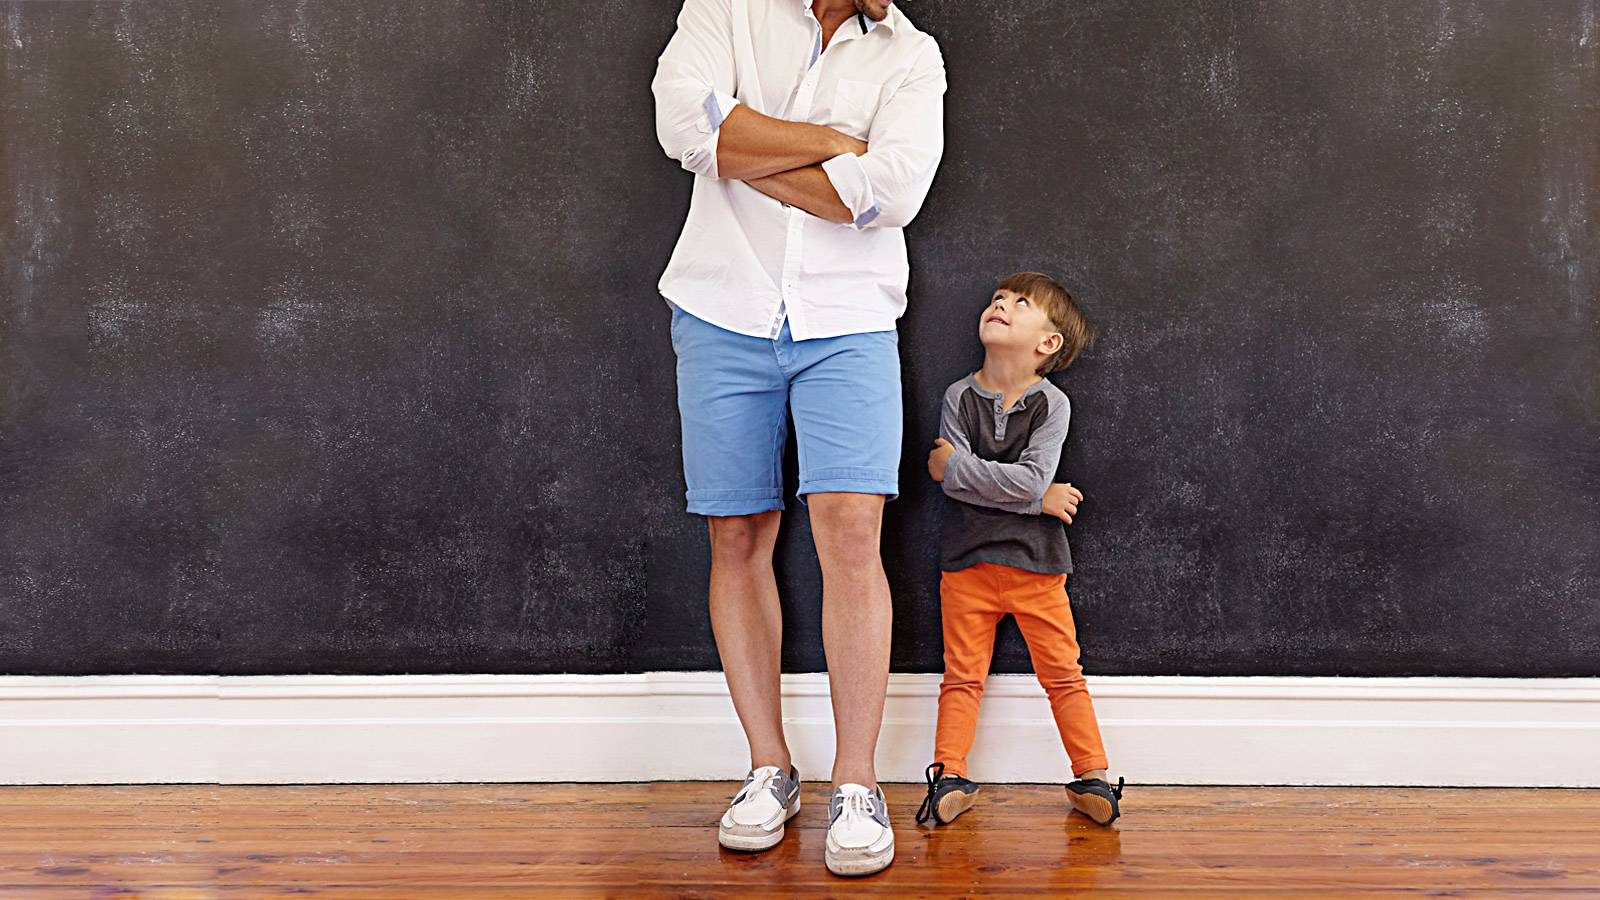 Parents-10-ways-to-be-juniors-best-role-model-2